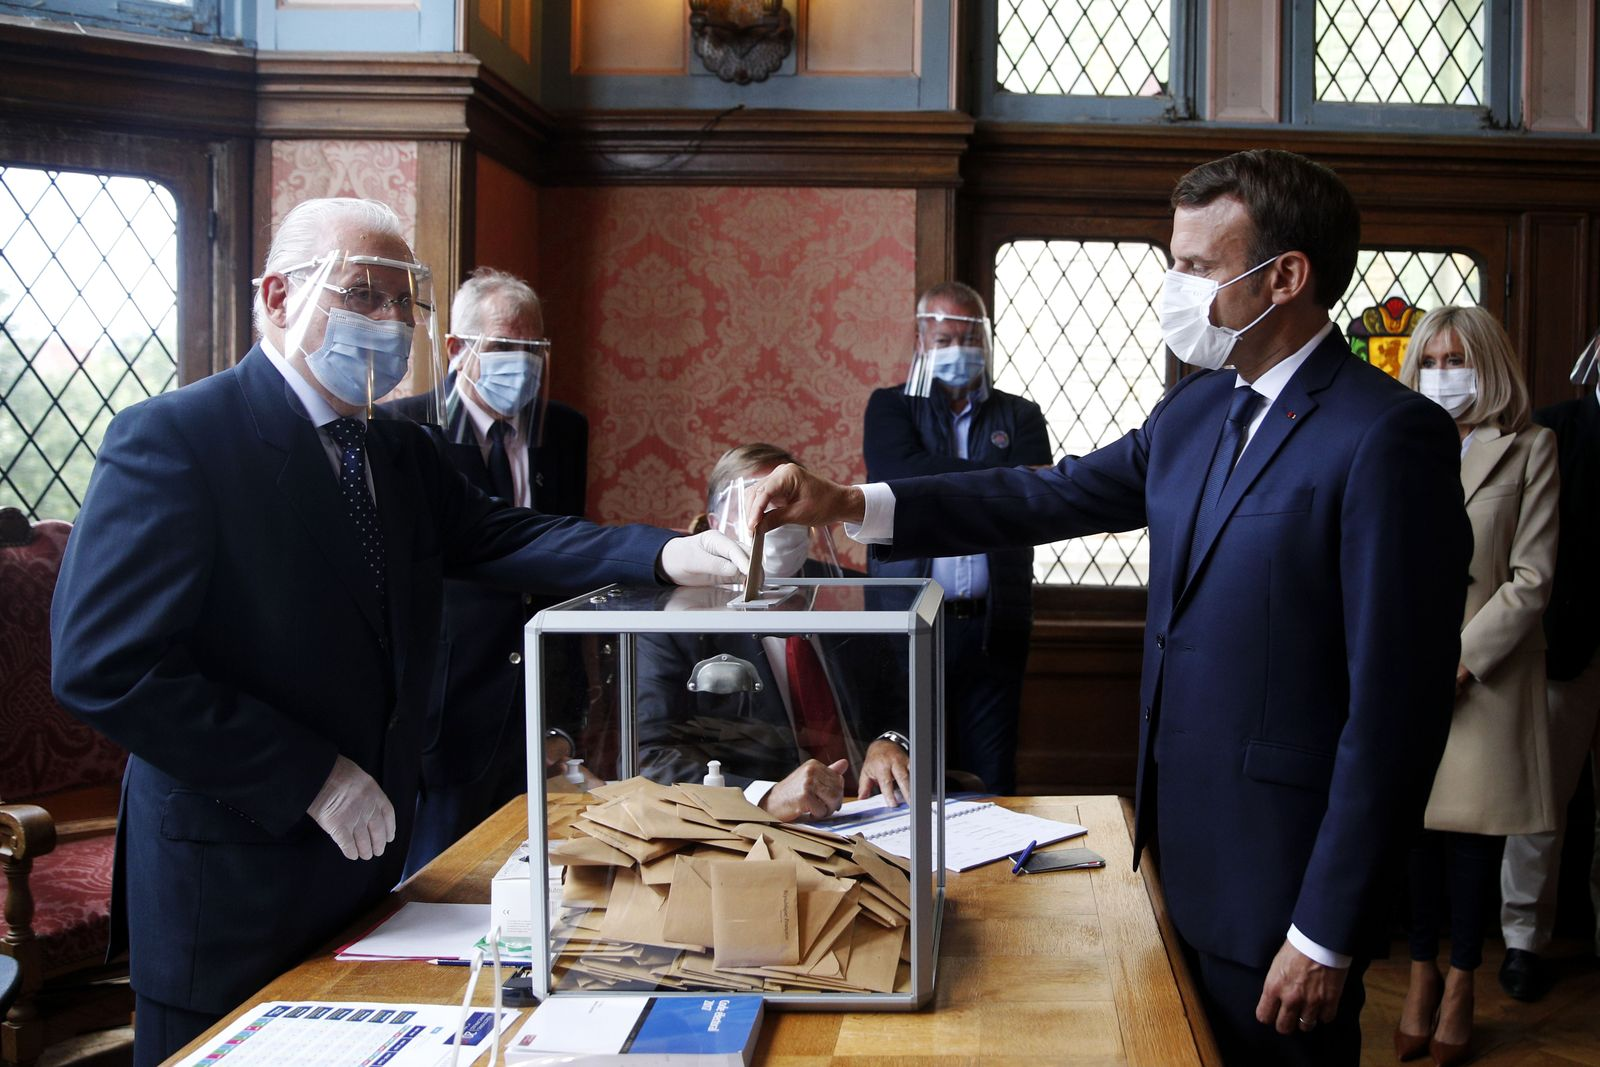 French municipal election in Le Touquet, France - 28 Jun 2020